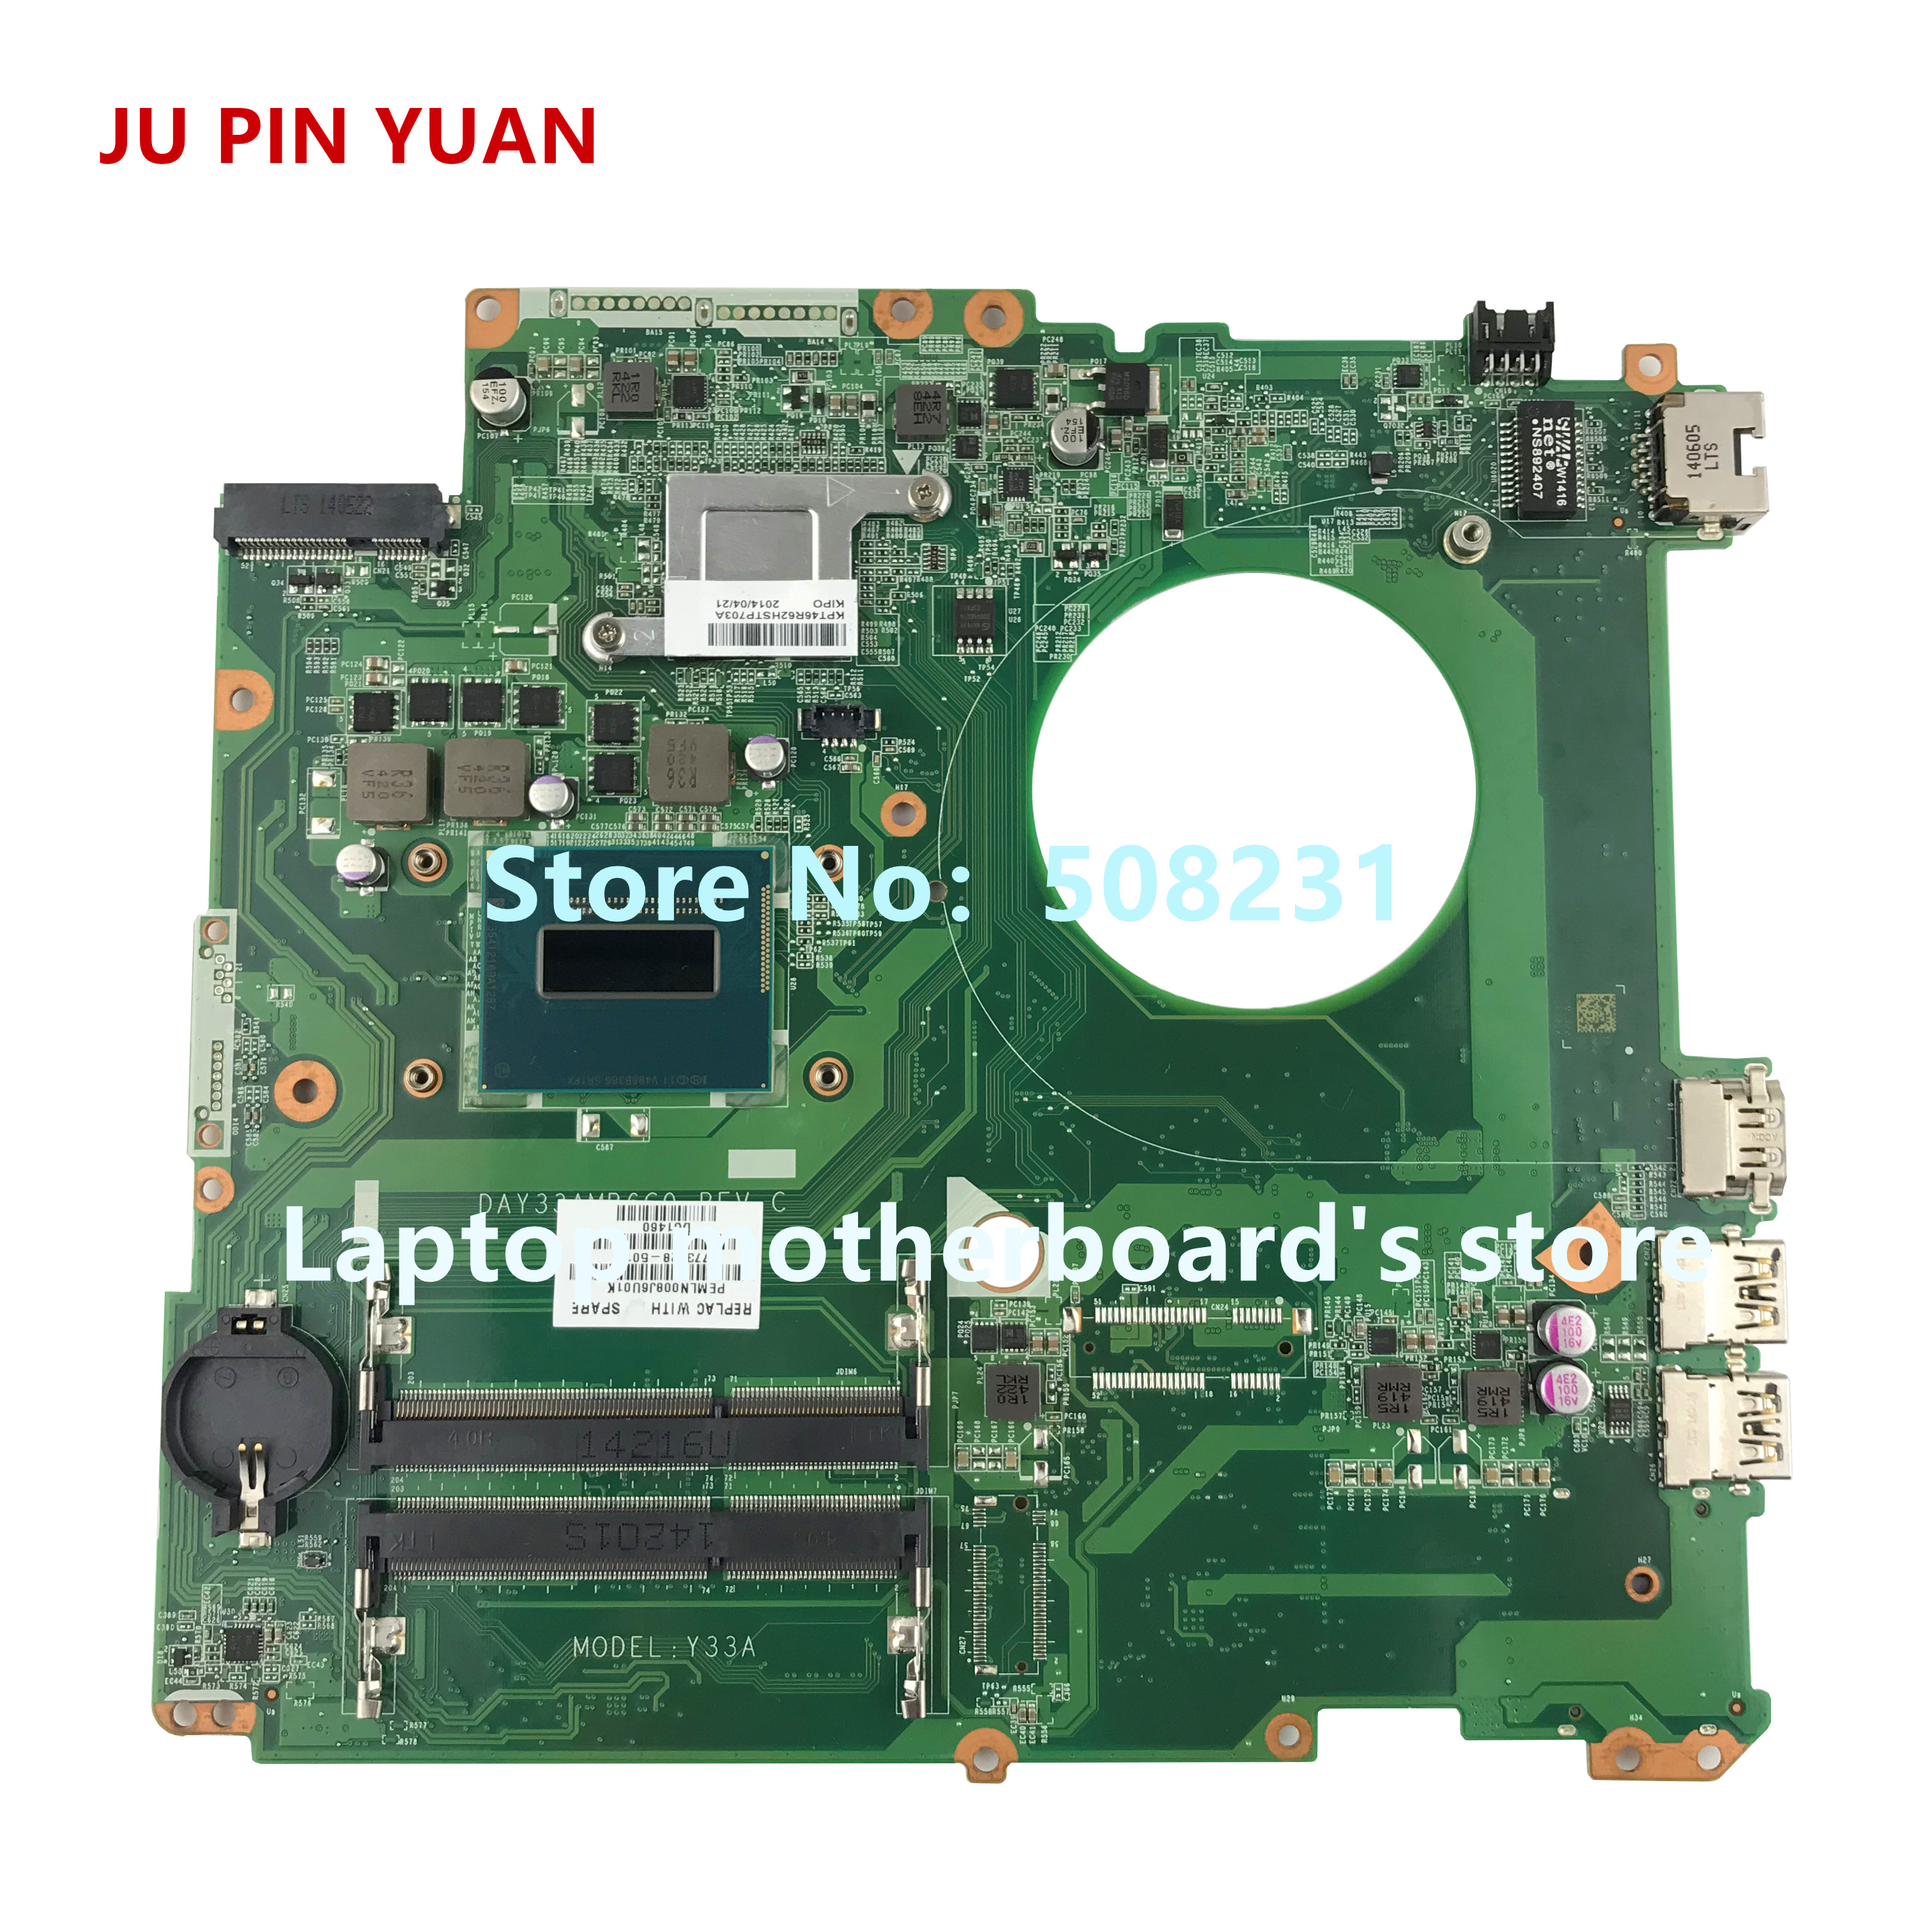 Laptop Motherboard Ju Pin Yuan 773128-501 Day33amb6c0 Y33a Mainboard Für Hp Envy 17-k 17t-k Laptop Motherboard Mit Hm87 I7-4710hq Voll Getestet StäRkung Von Sehnen Und Knochen